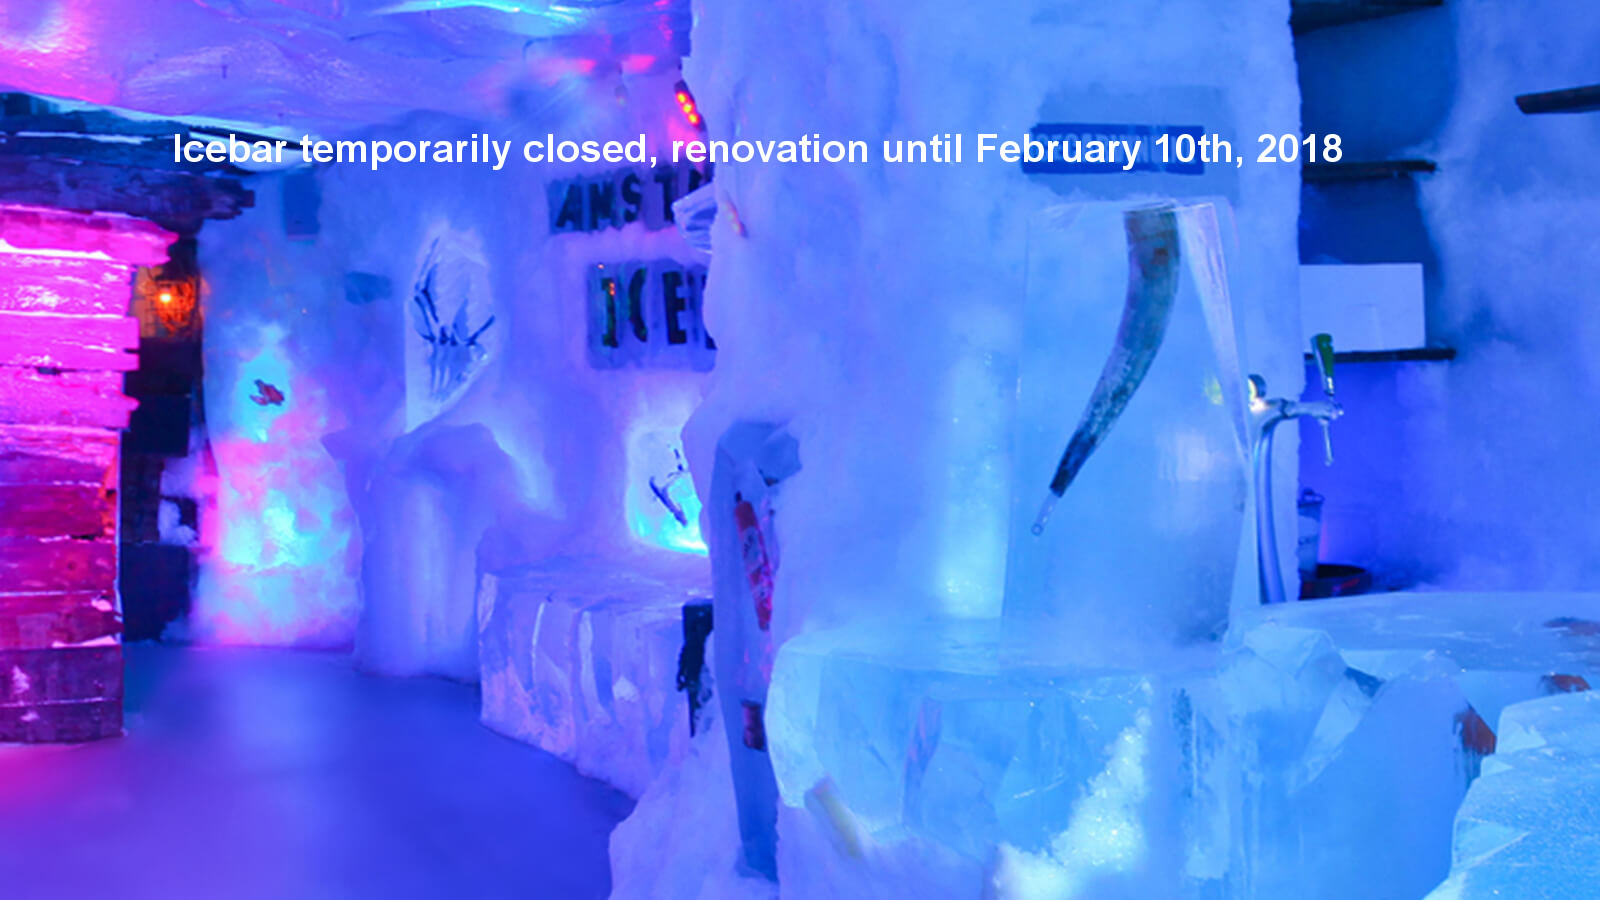 Icebar alternatieven